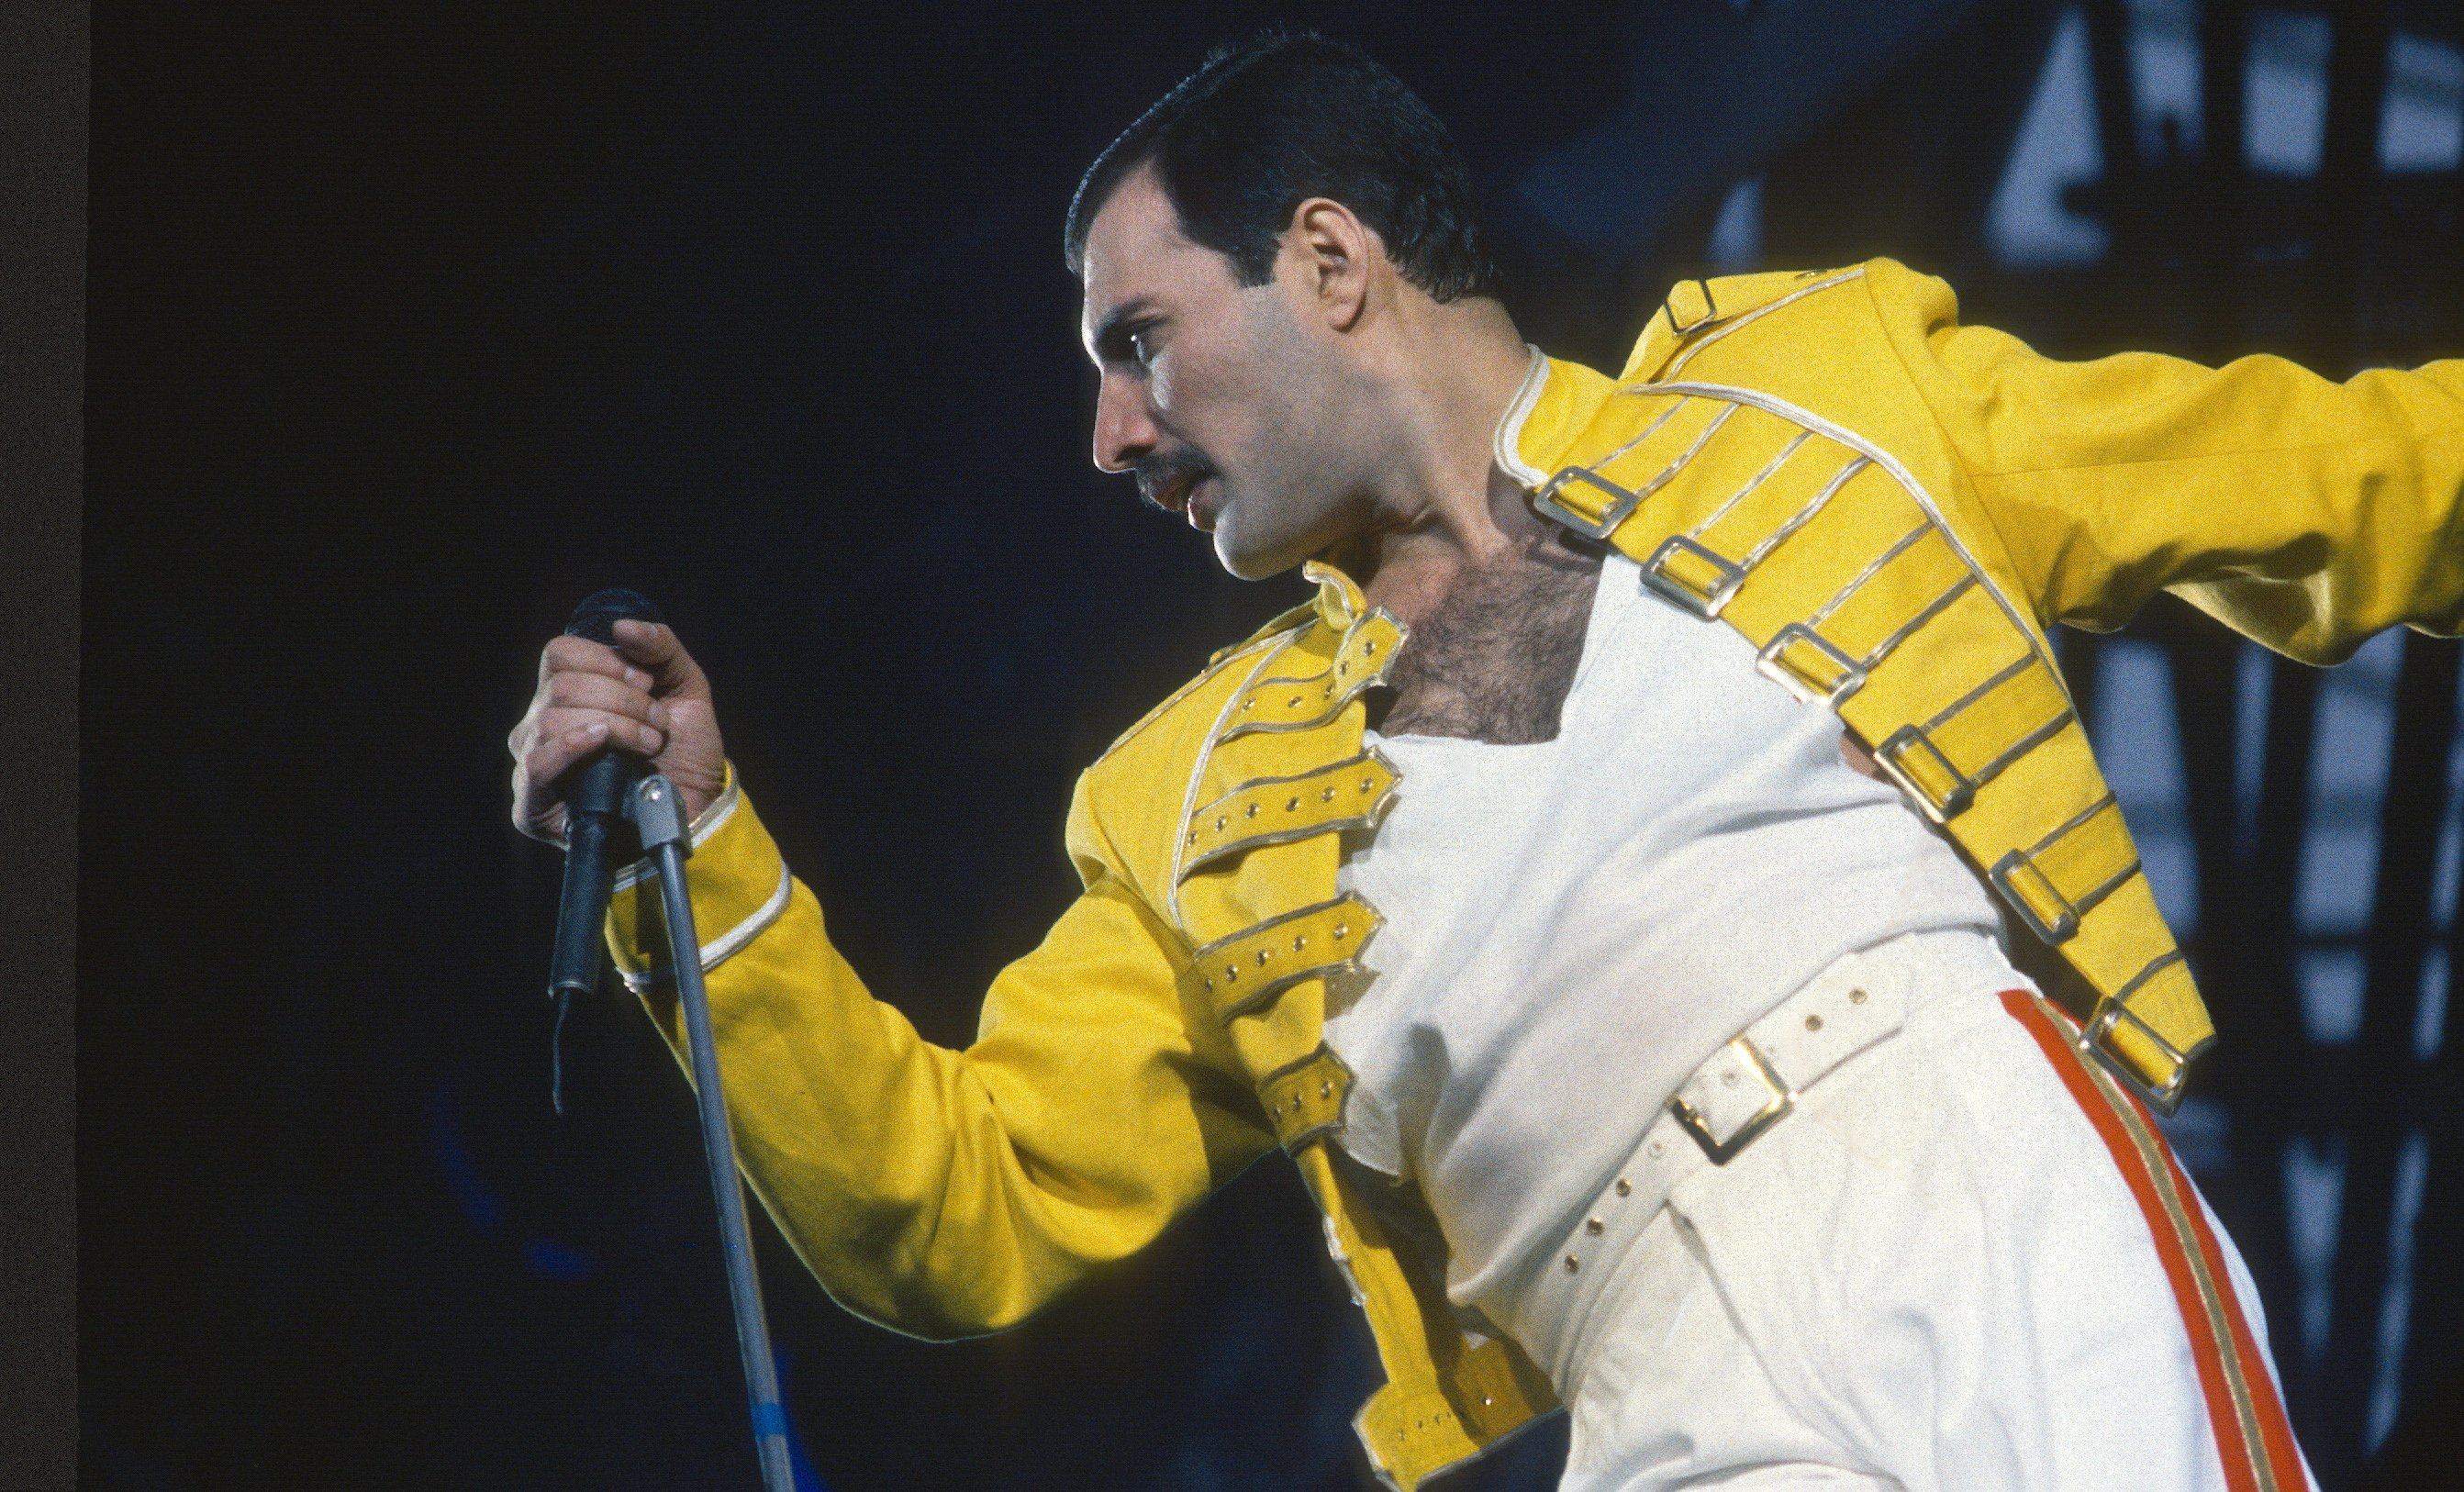 Freddie Mercury performing at a concert in London, England. | Source: Getty Images